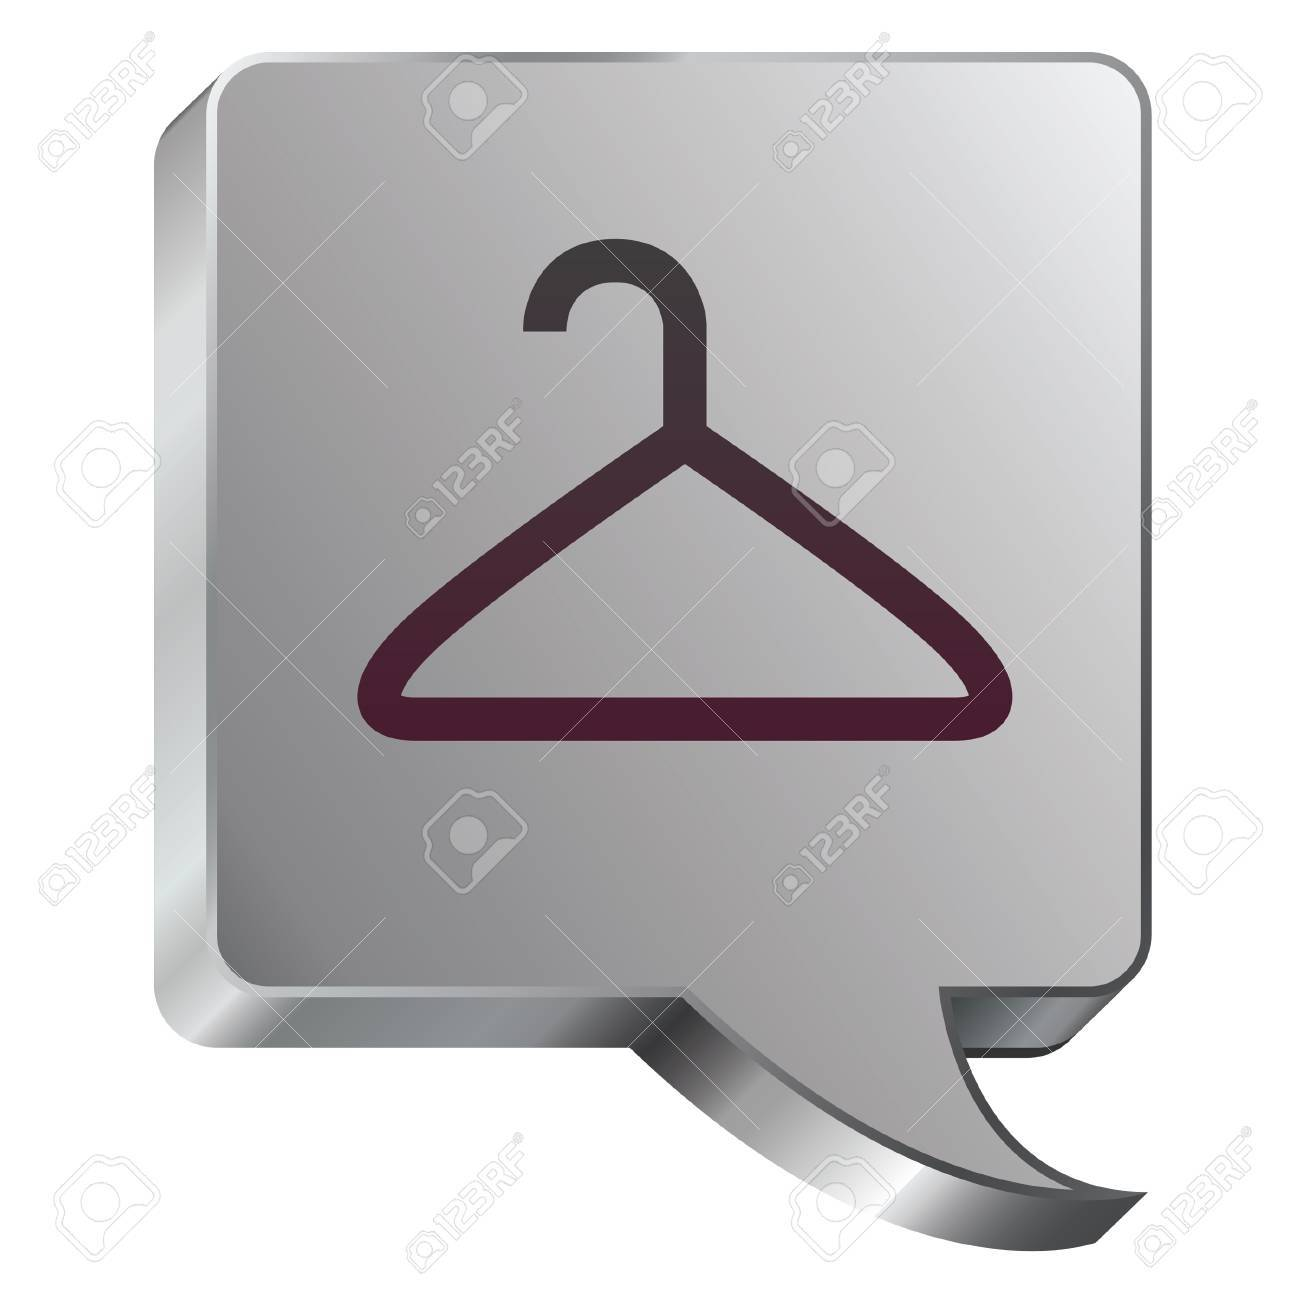 Coathanger icon on stainless steel modern industrial voice bubble icon suitable for use as a website accent, on promotional materials, or in advertisements Stock Vector - 14707928